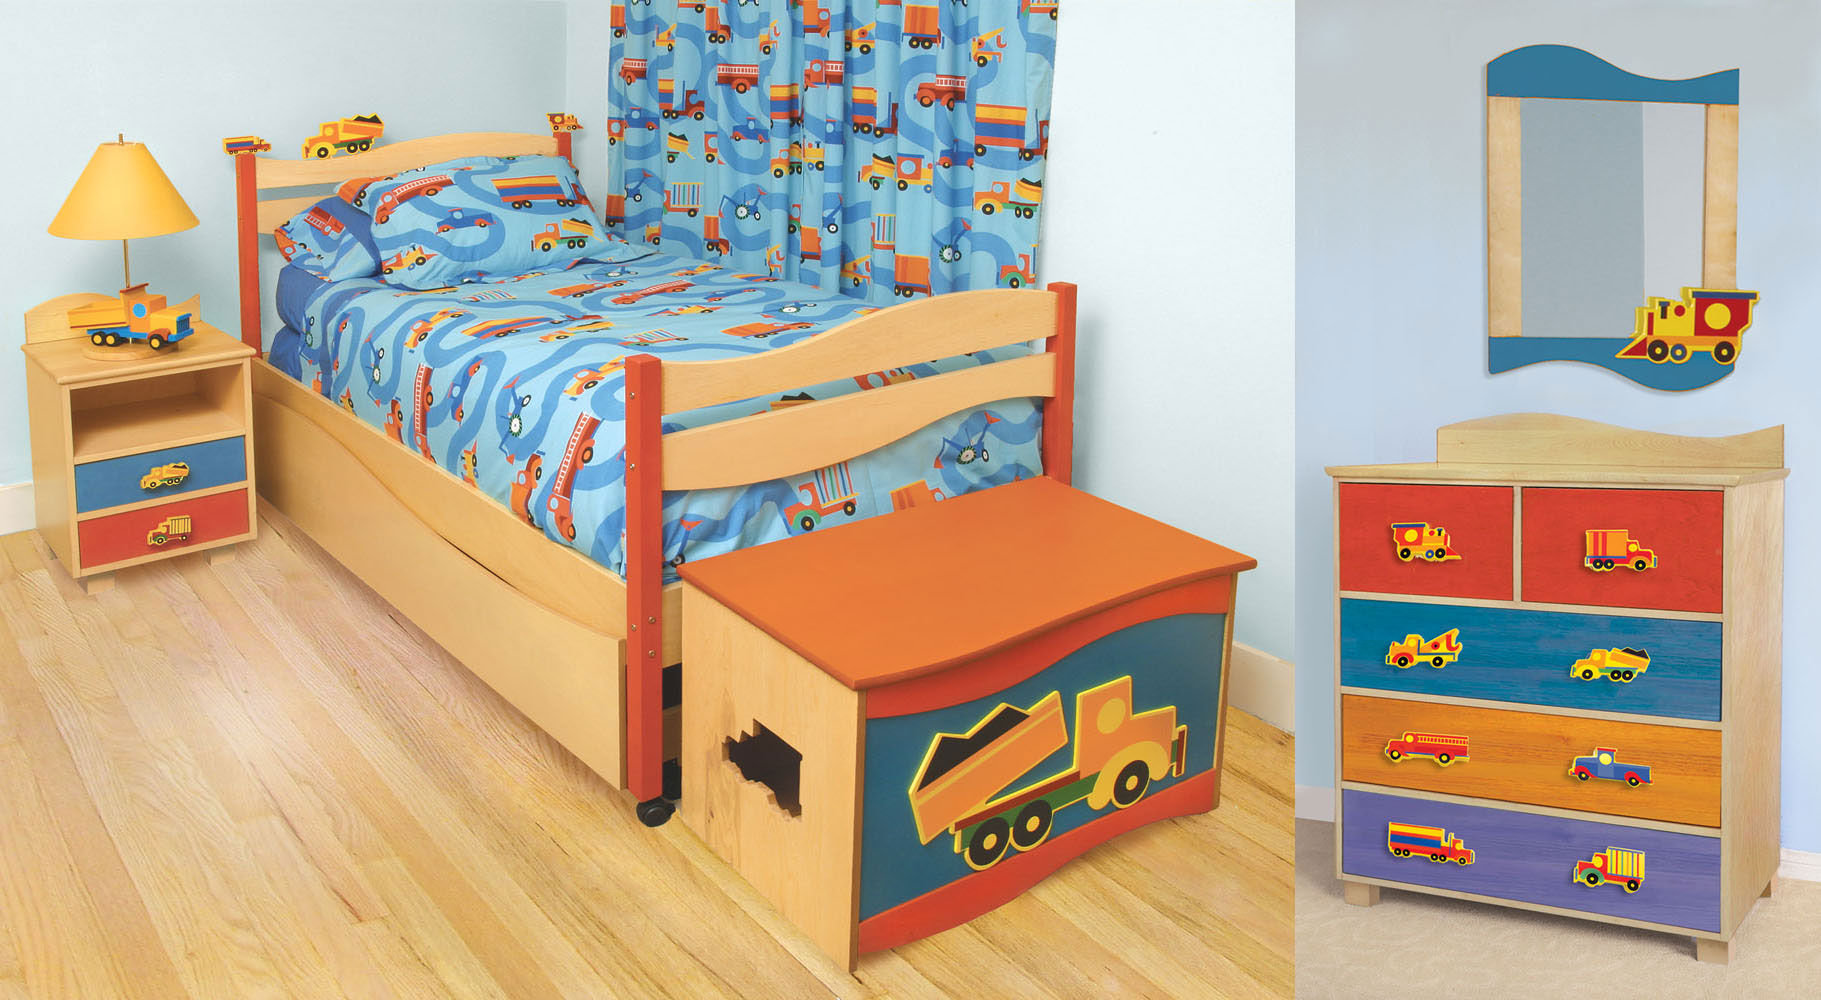 Youth Bedroom Furniture For Boys Boys Like Trucks Bedroom Set Kids Bed 866 594 6890 Room Magic The Boys